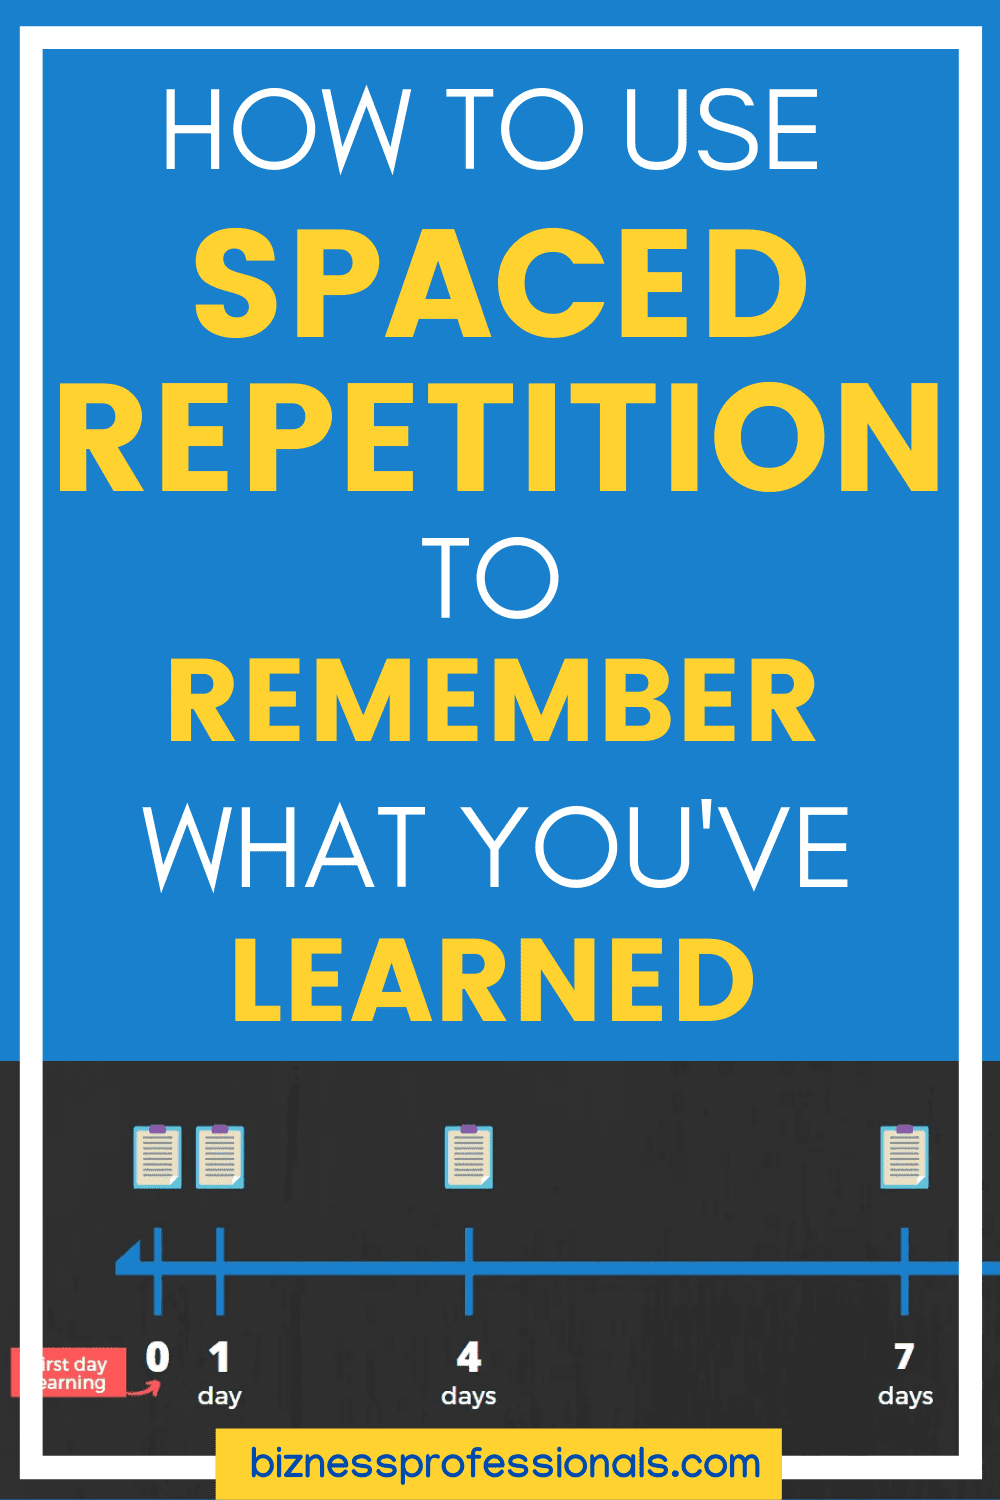 how to use spaced repetition to remember